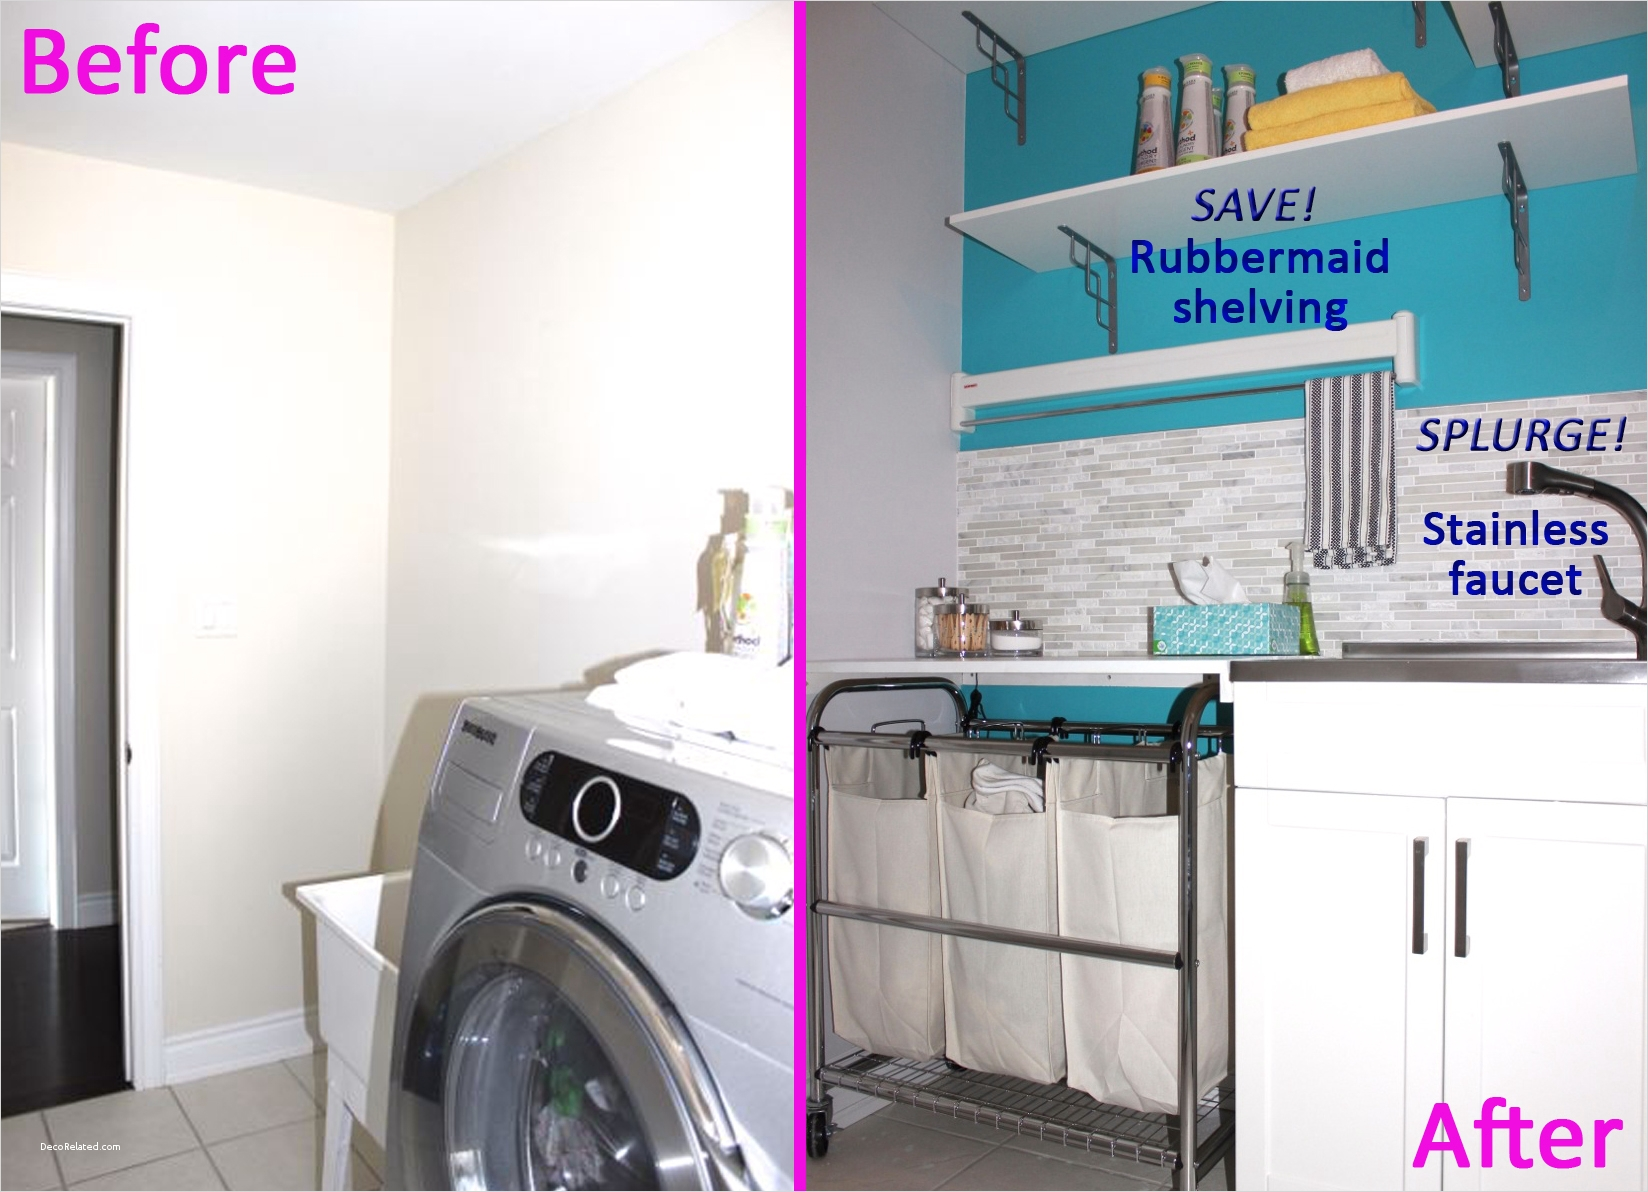 Laundry Room Wall Art Decor Layout 26 before and after Diy Makeover Laundry Room Design with Stone Wall Cladding Backsplash White and 9